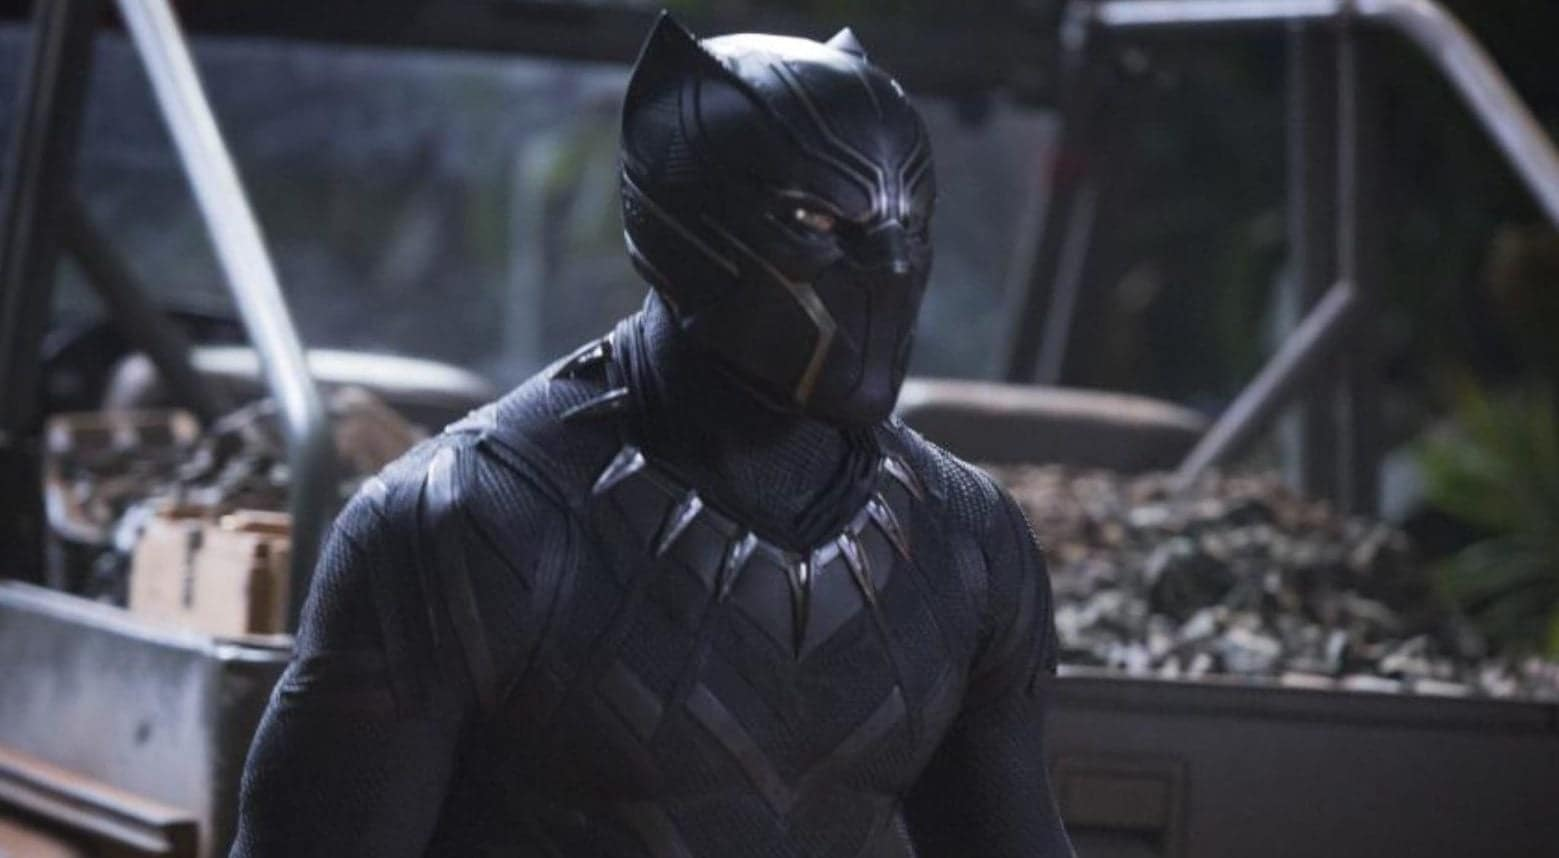 Marvel's 'Black Panther' On Track To Pass $900 Million Worldwide